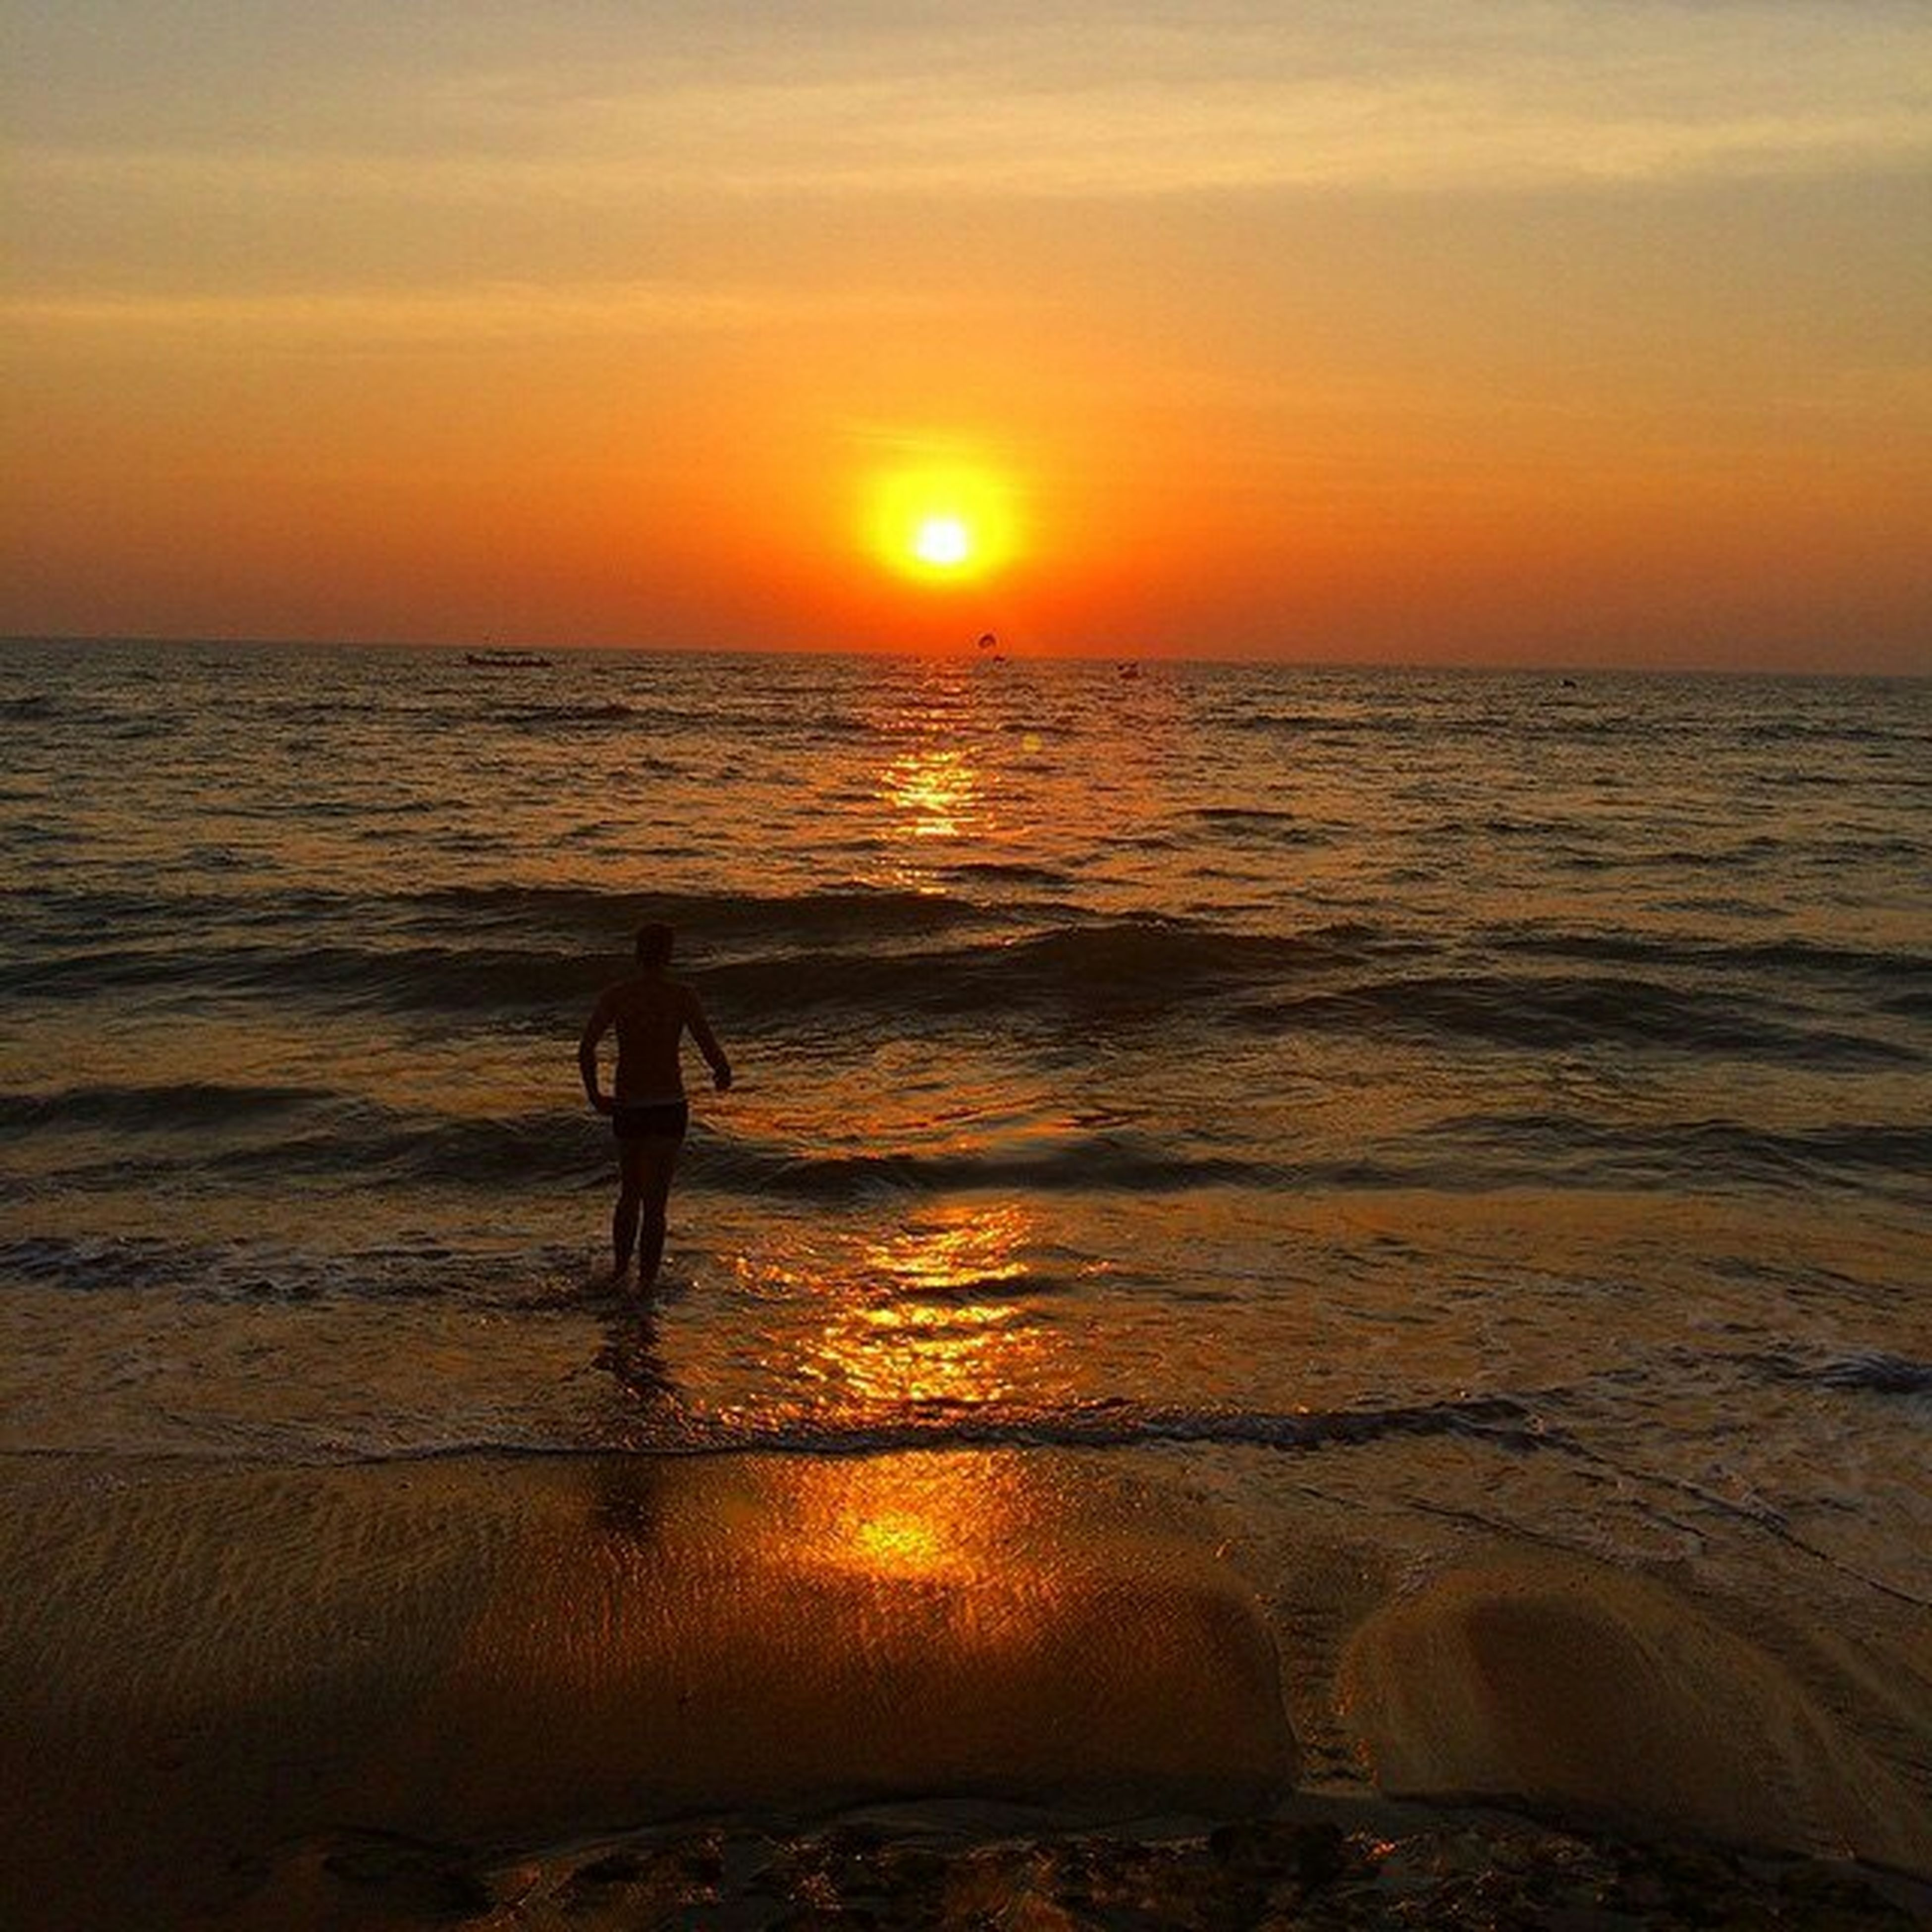 sunset, sea, water, beach, horizon over water, silhouette, leisure activity, orange color, shore, lifestyles, scenics, sun, beauty in nature, full length, wave, vacations, standing, tranquil scene